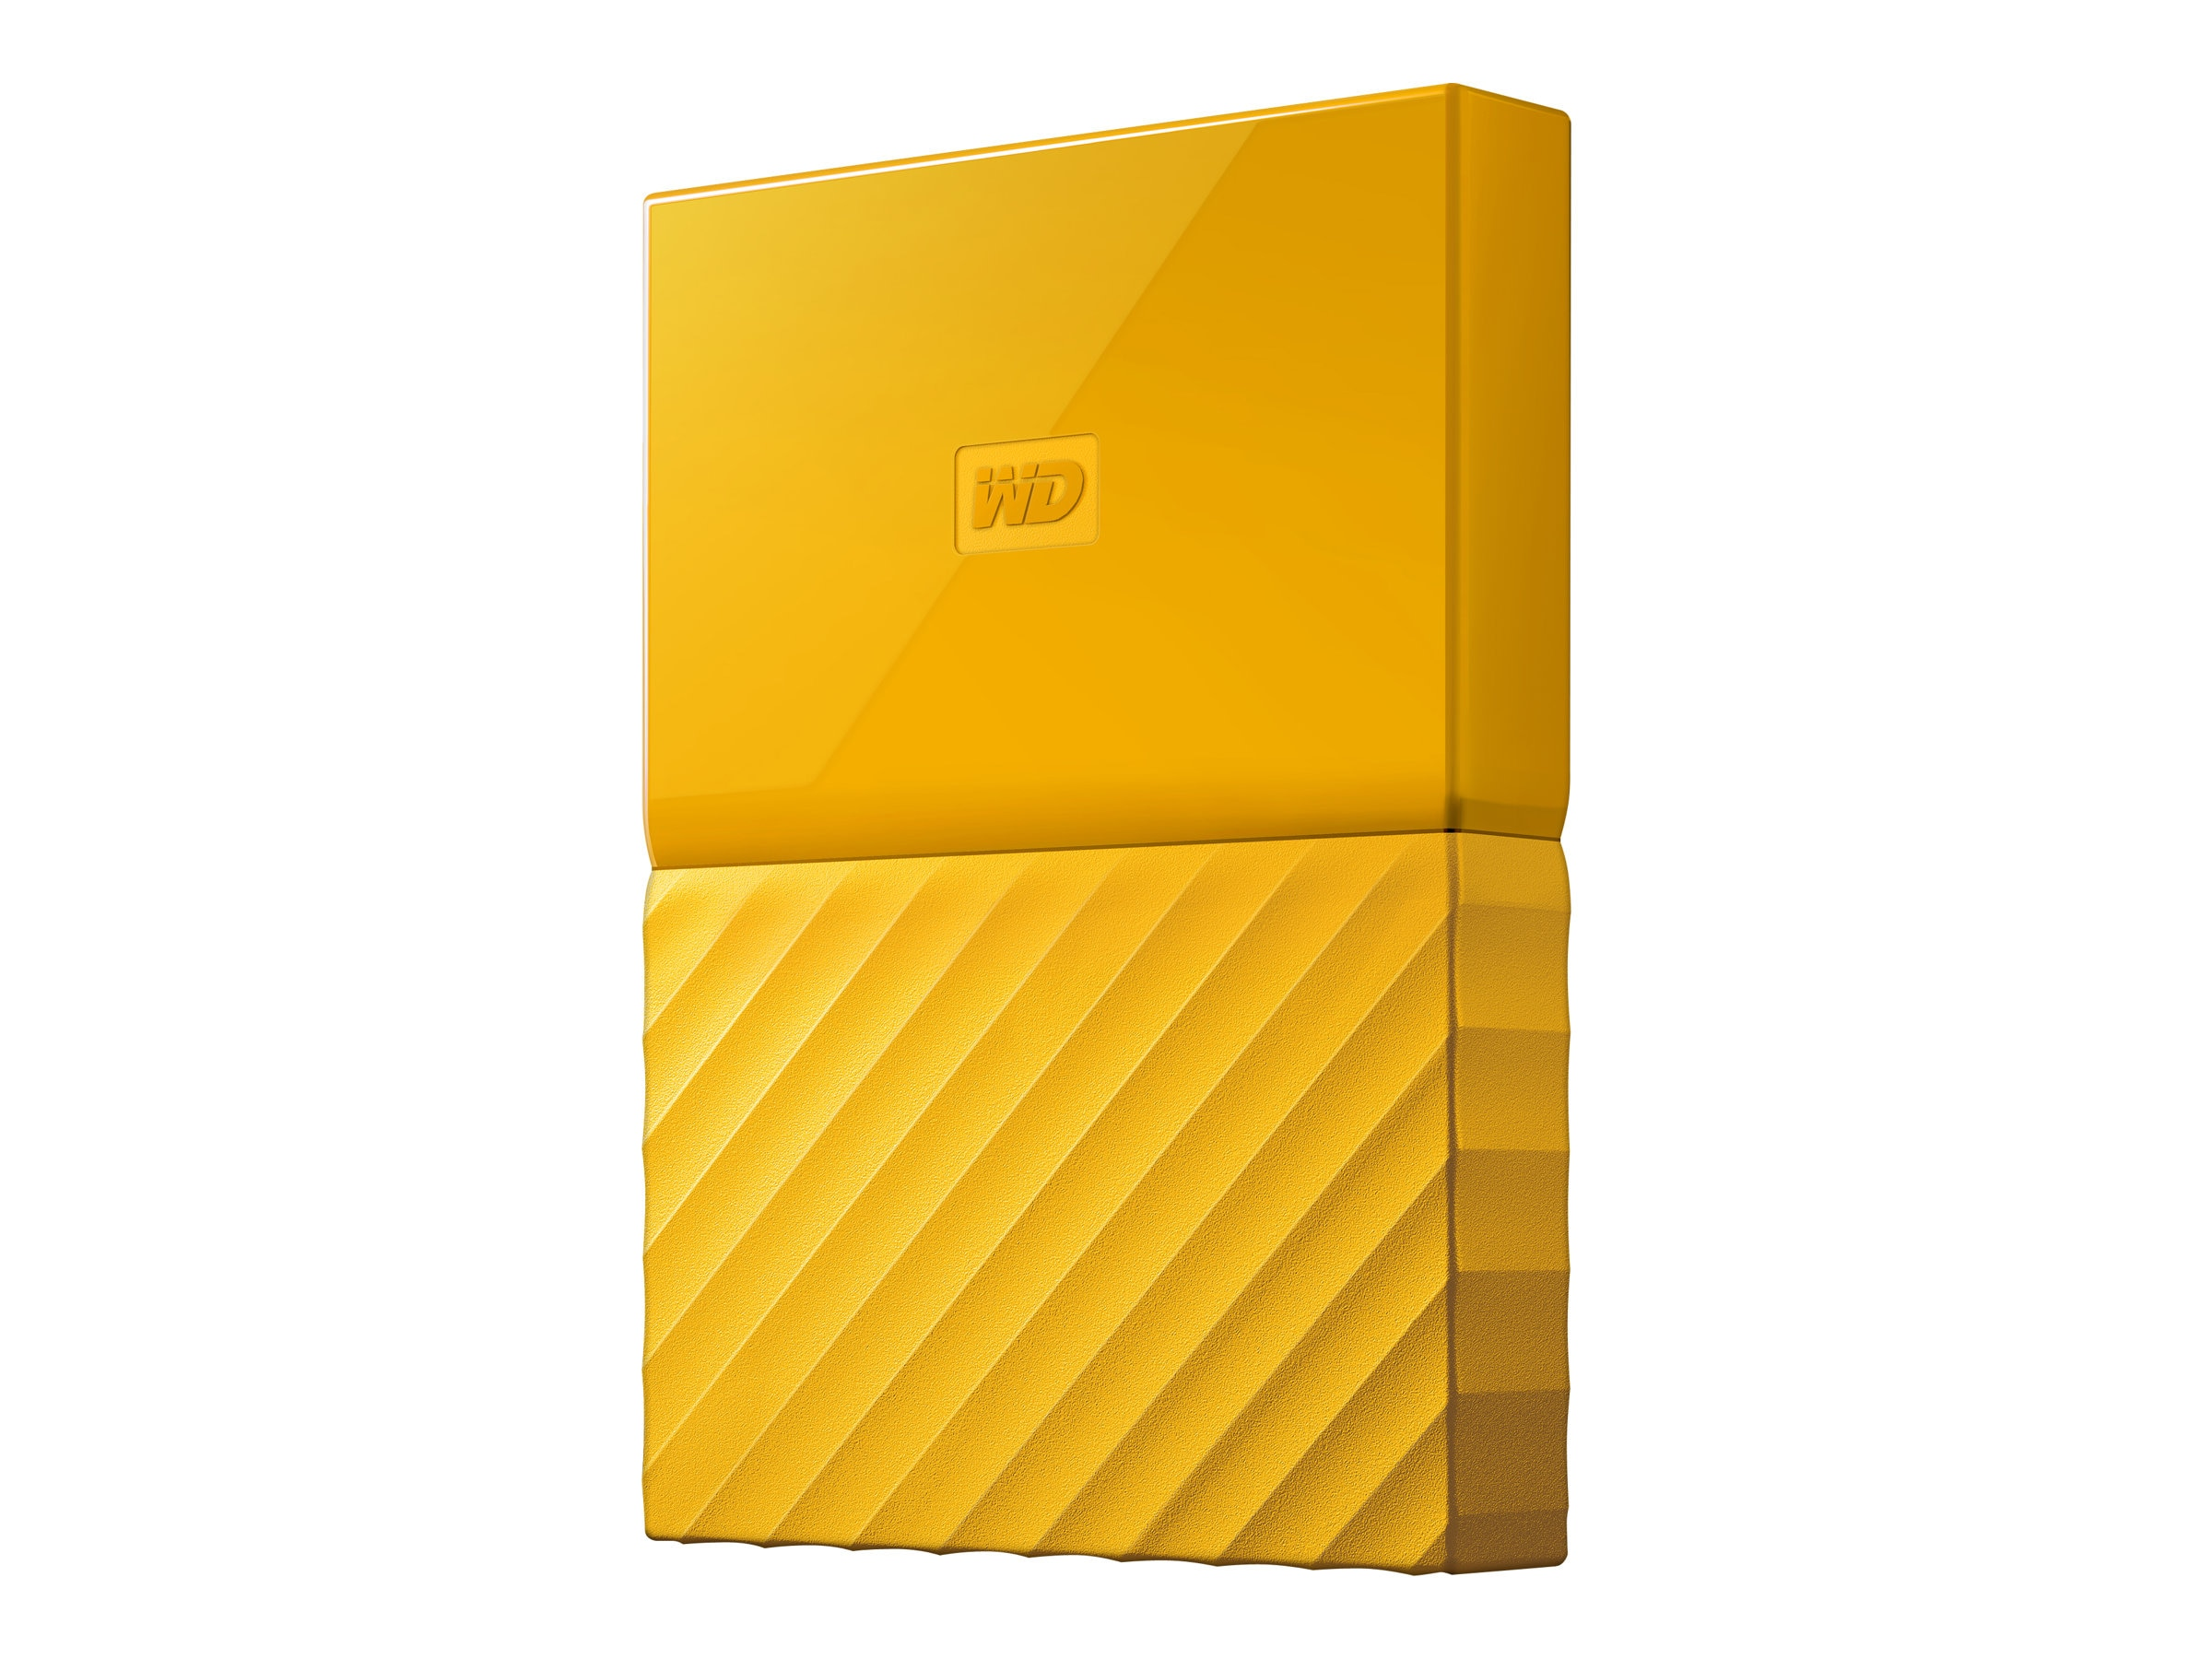 WD 2TB My Passport USB 3.0 Portable Hard Drive - Yellow